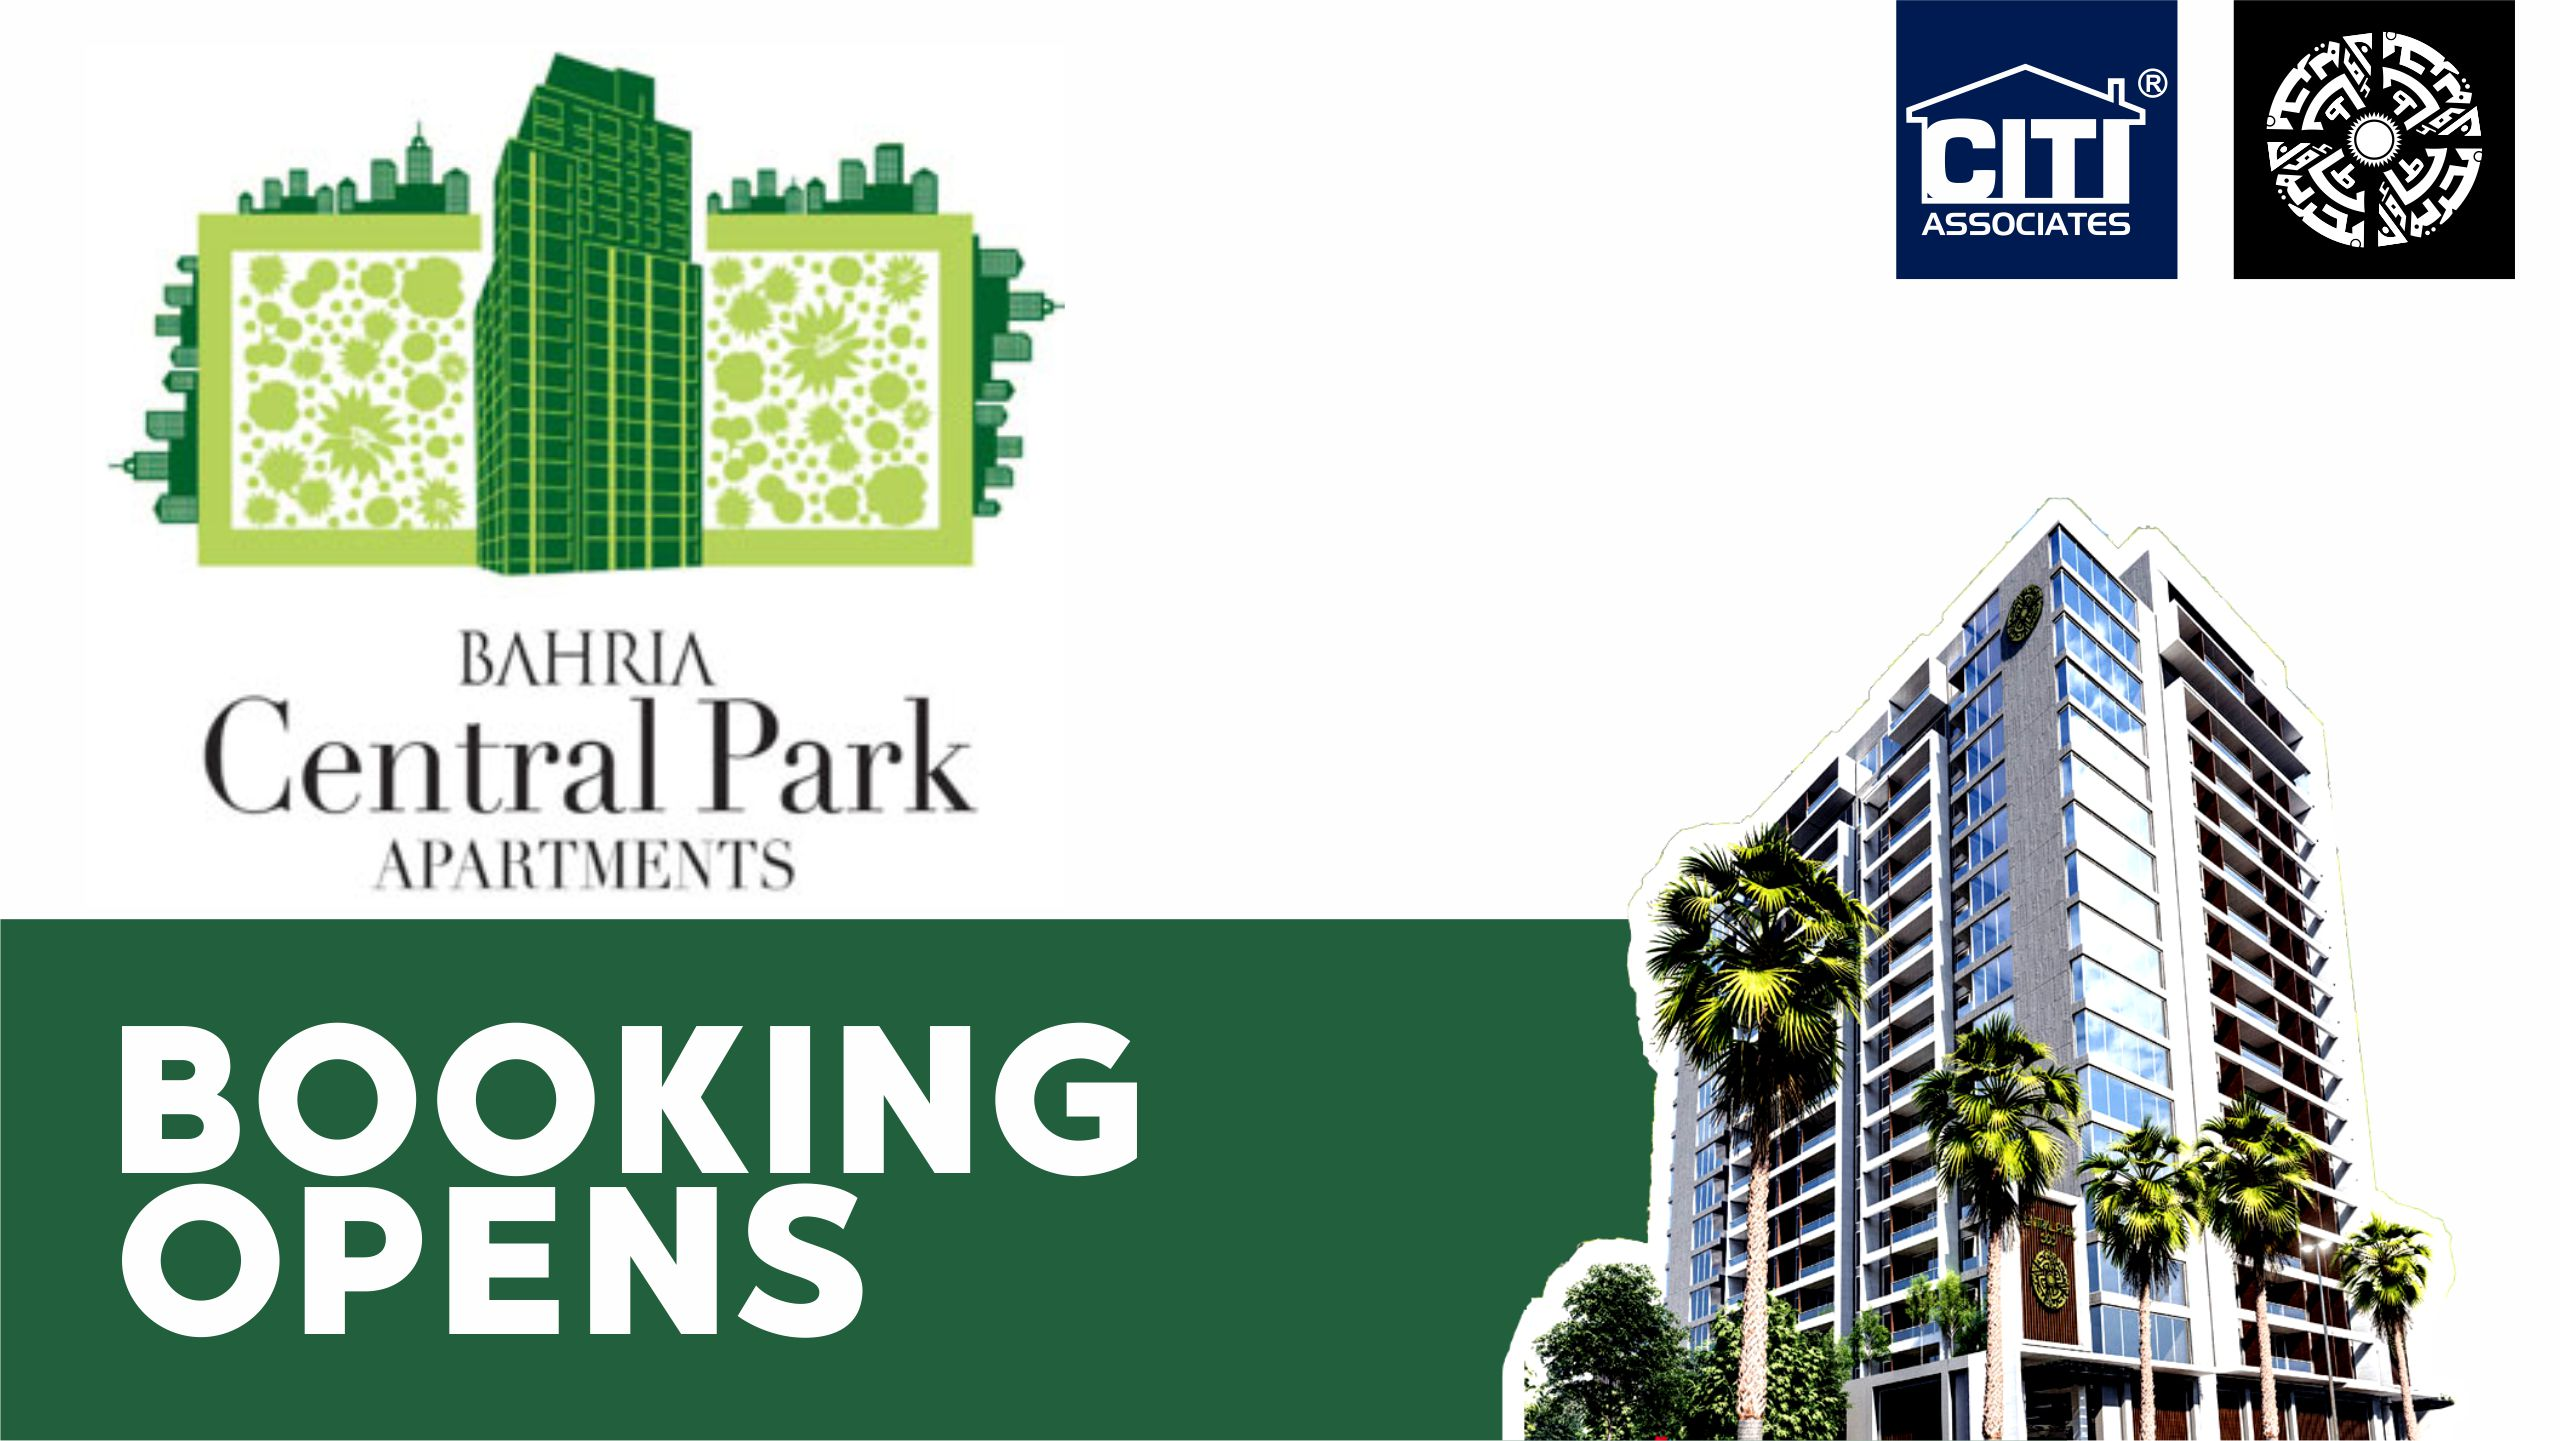 BOOKING OPEN! Central Park Apartments Karachi